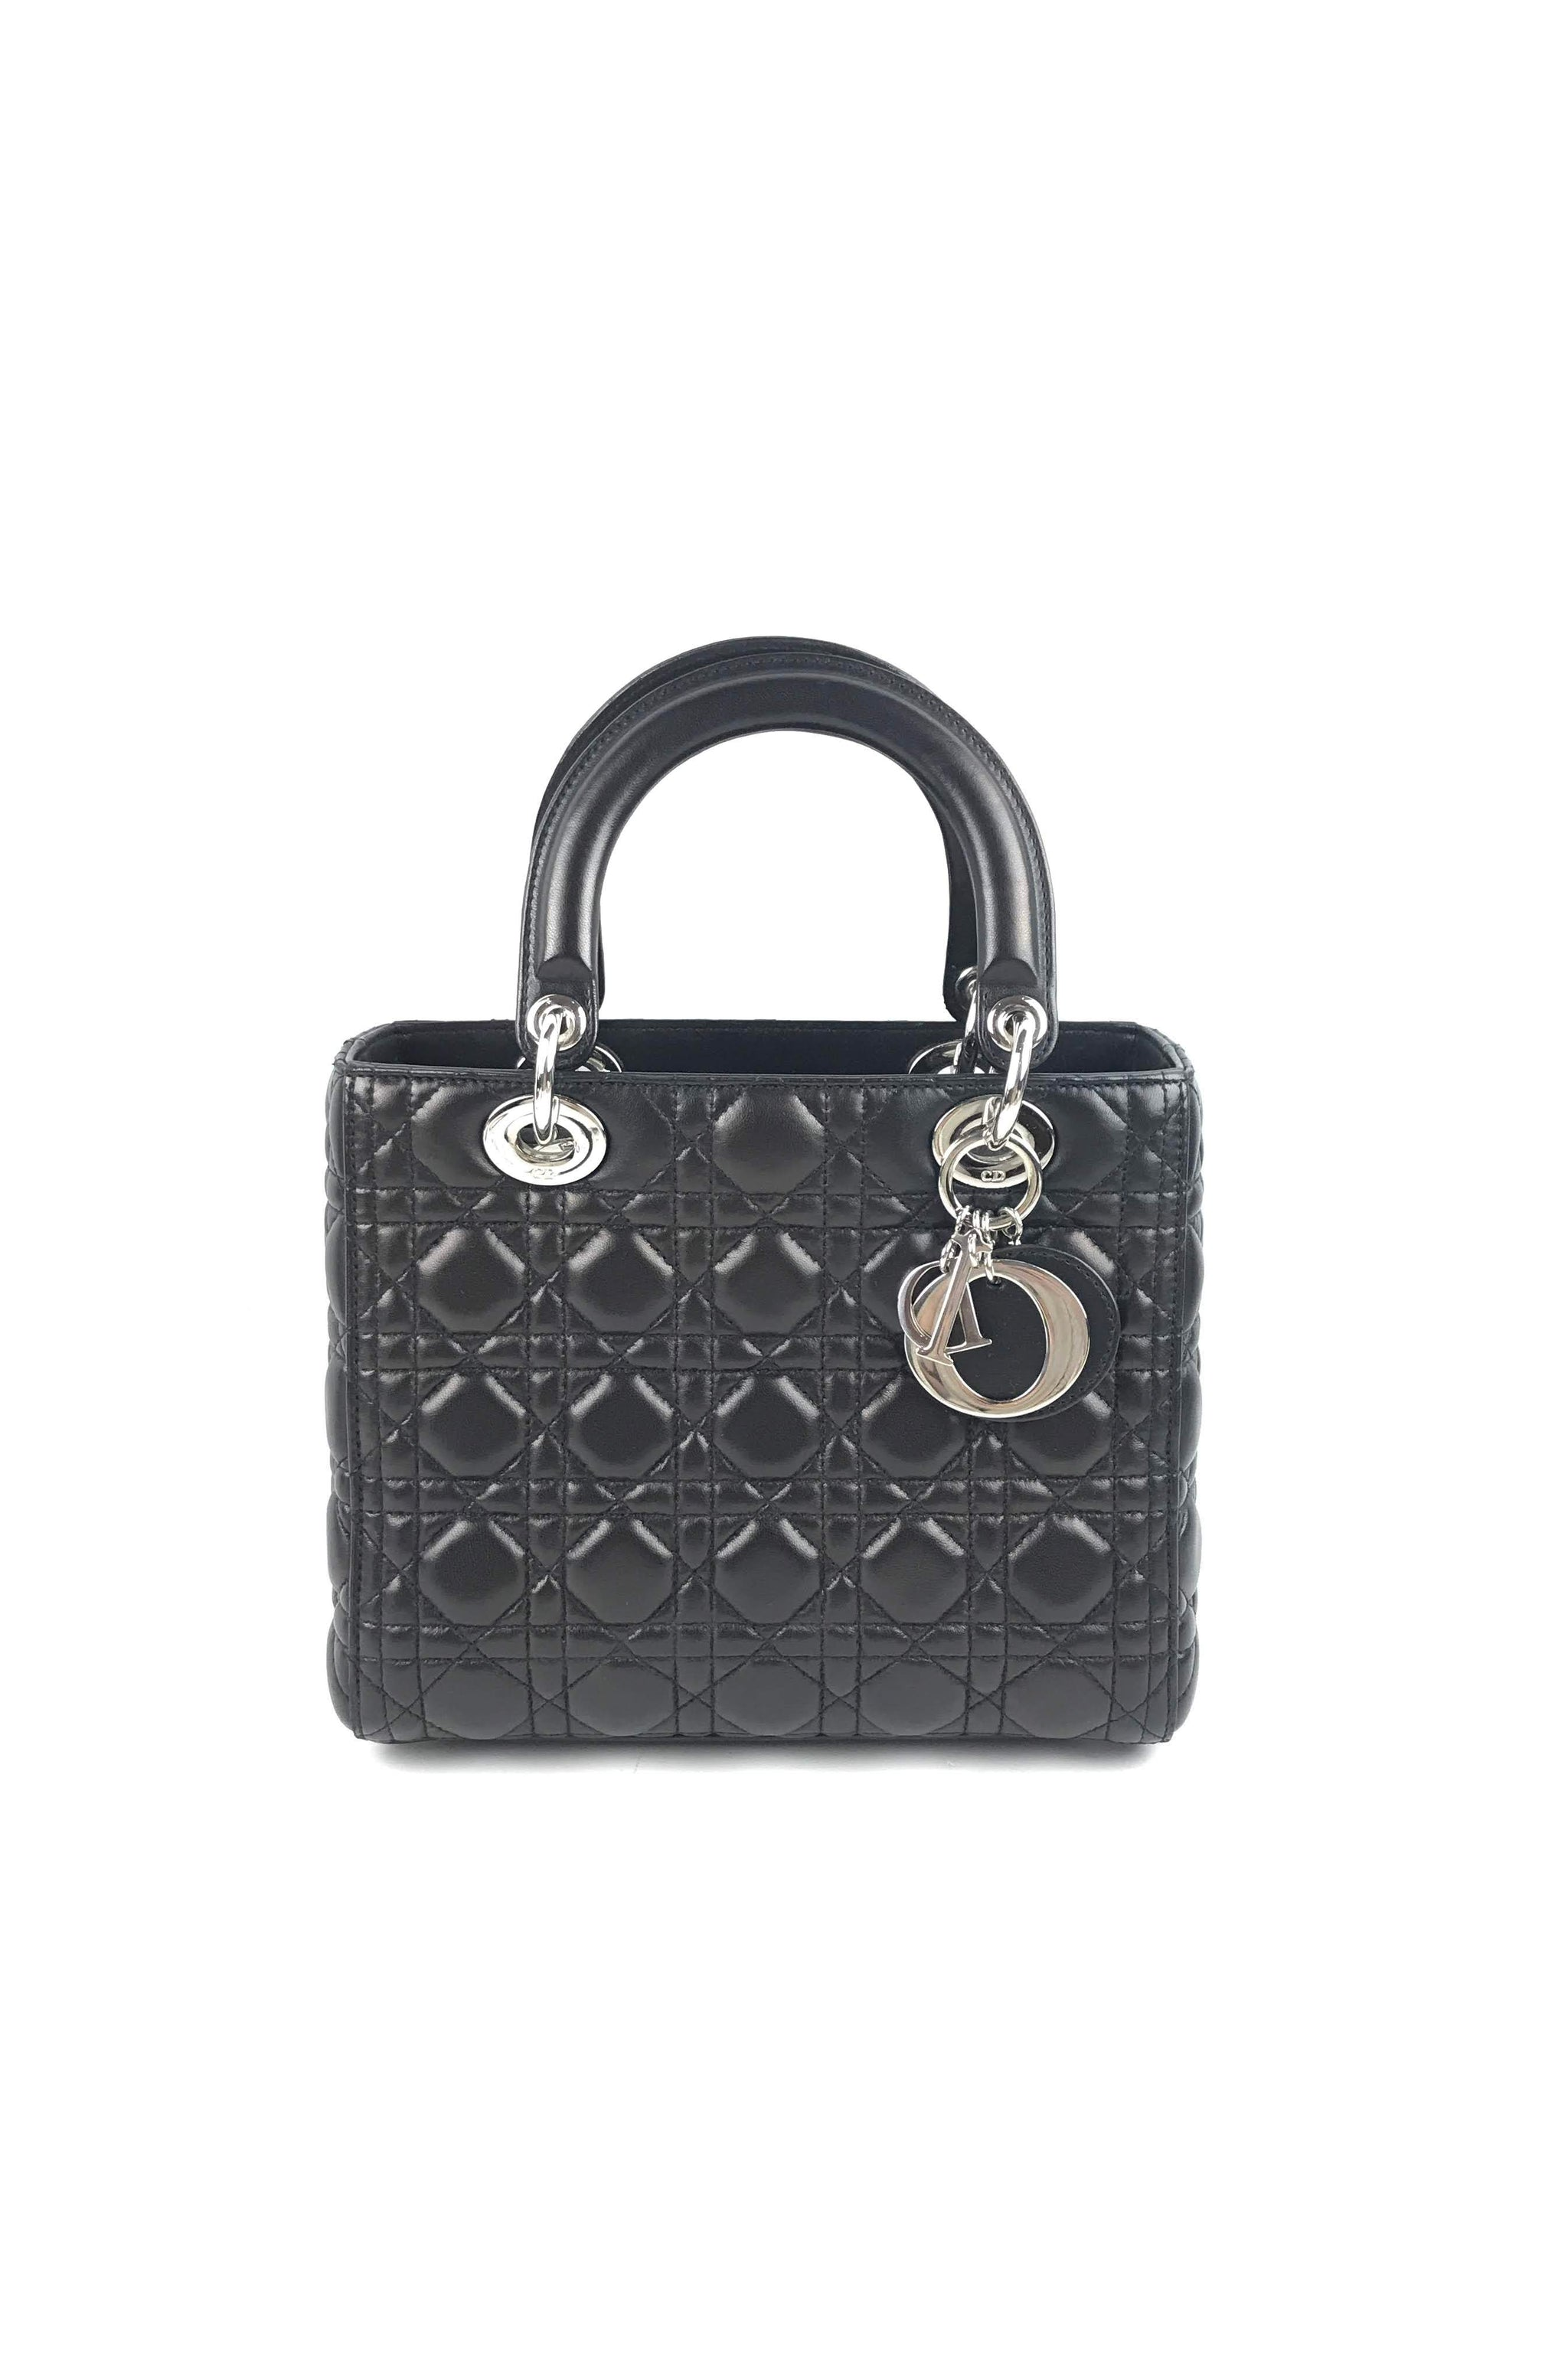 519d346d4e Black Lambskin Cannage Quilted Lady Dior Medium Bag – Haute Classics